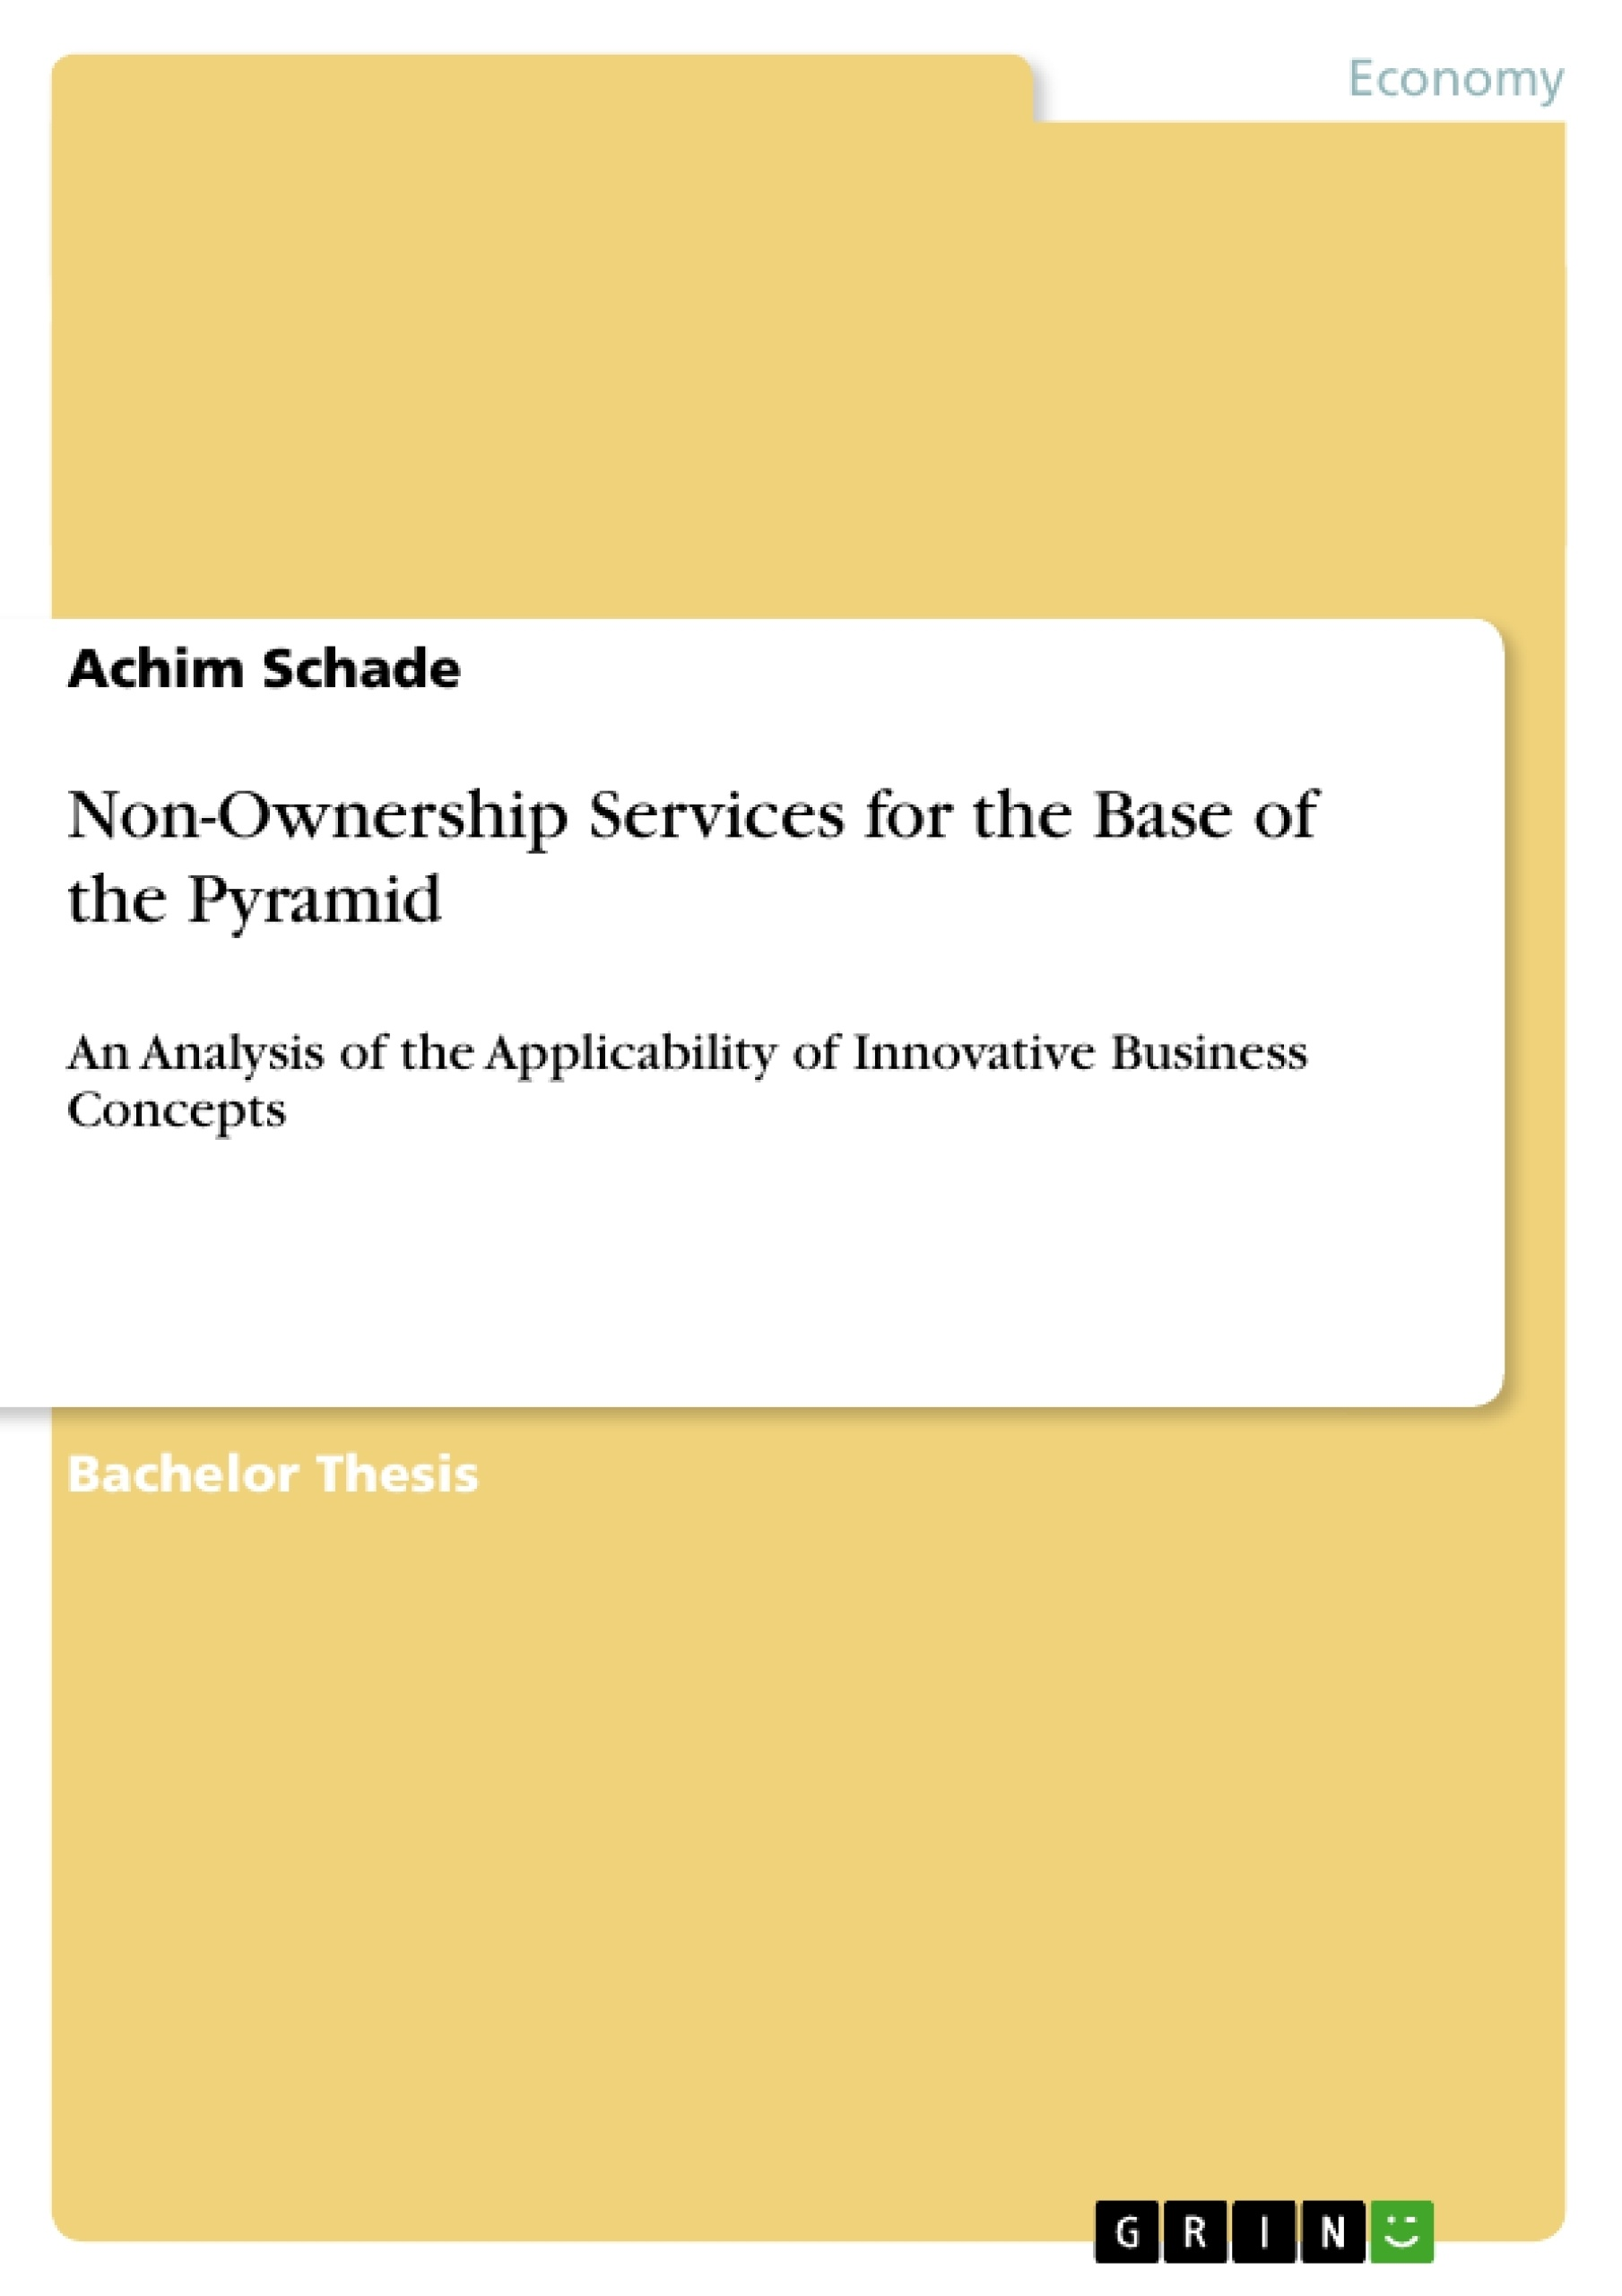 Title: Non-Ownership Services for the Base of the Pyramid